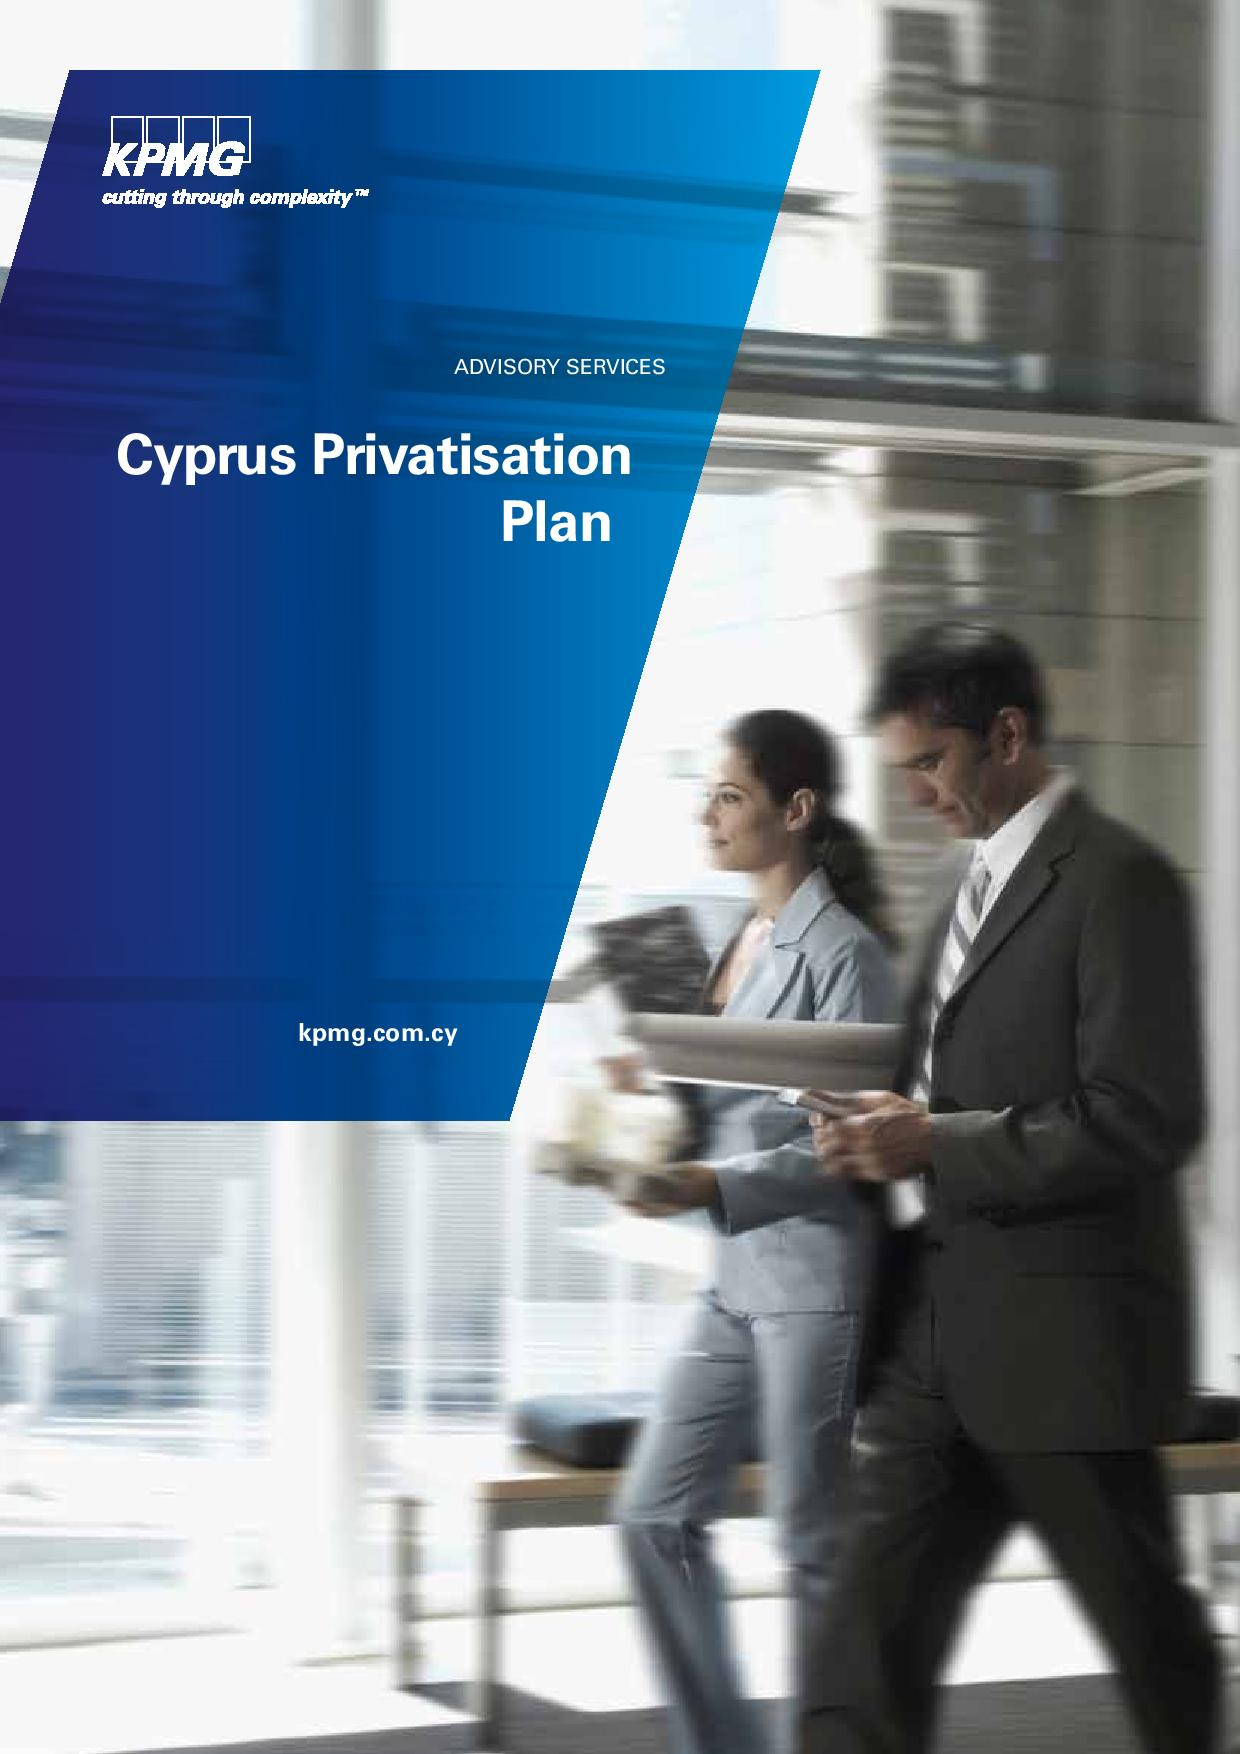 Cyprus Privatisation